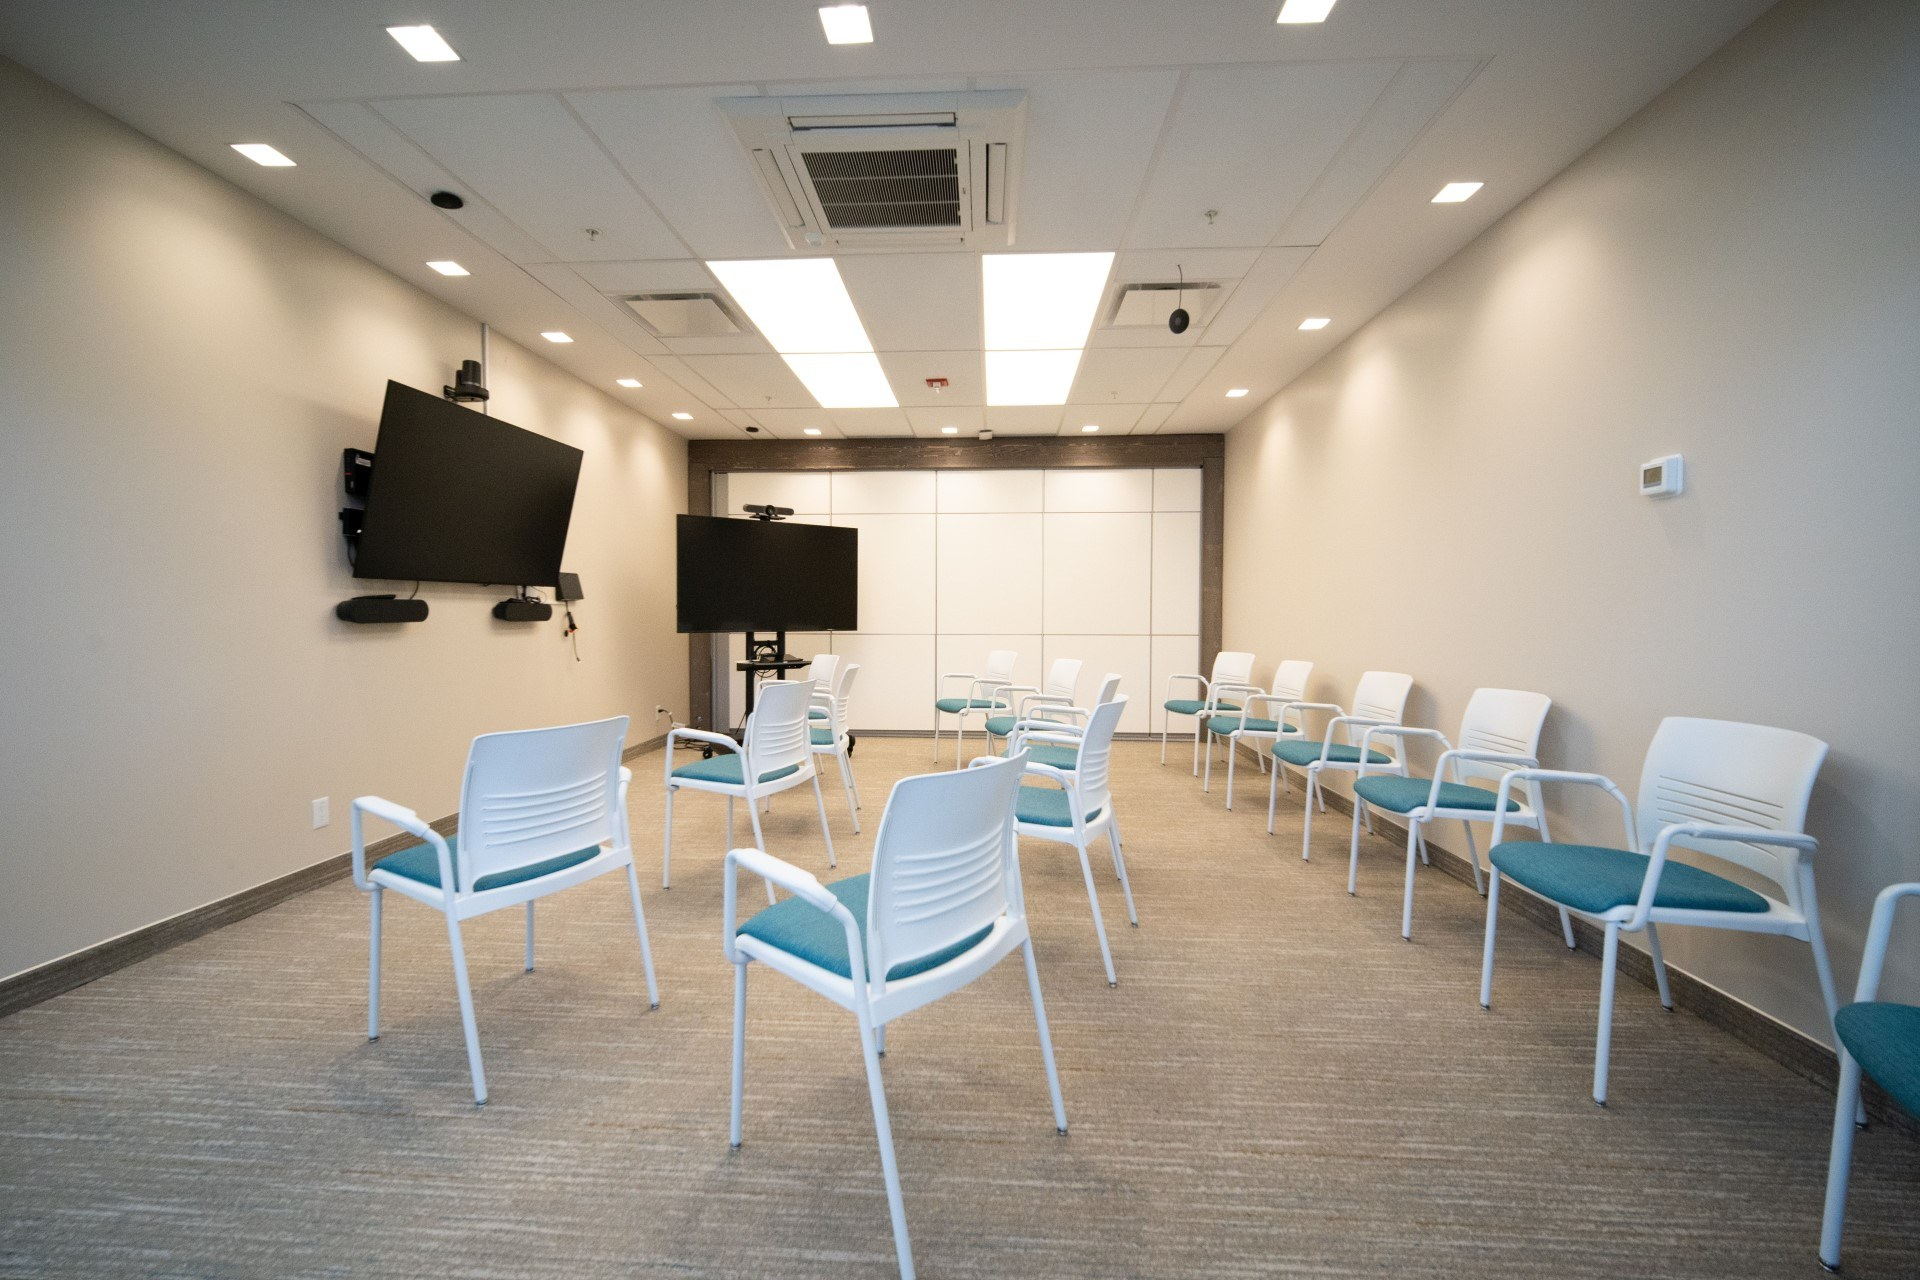 Conference room at Spruce community